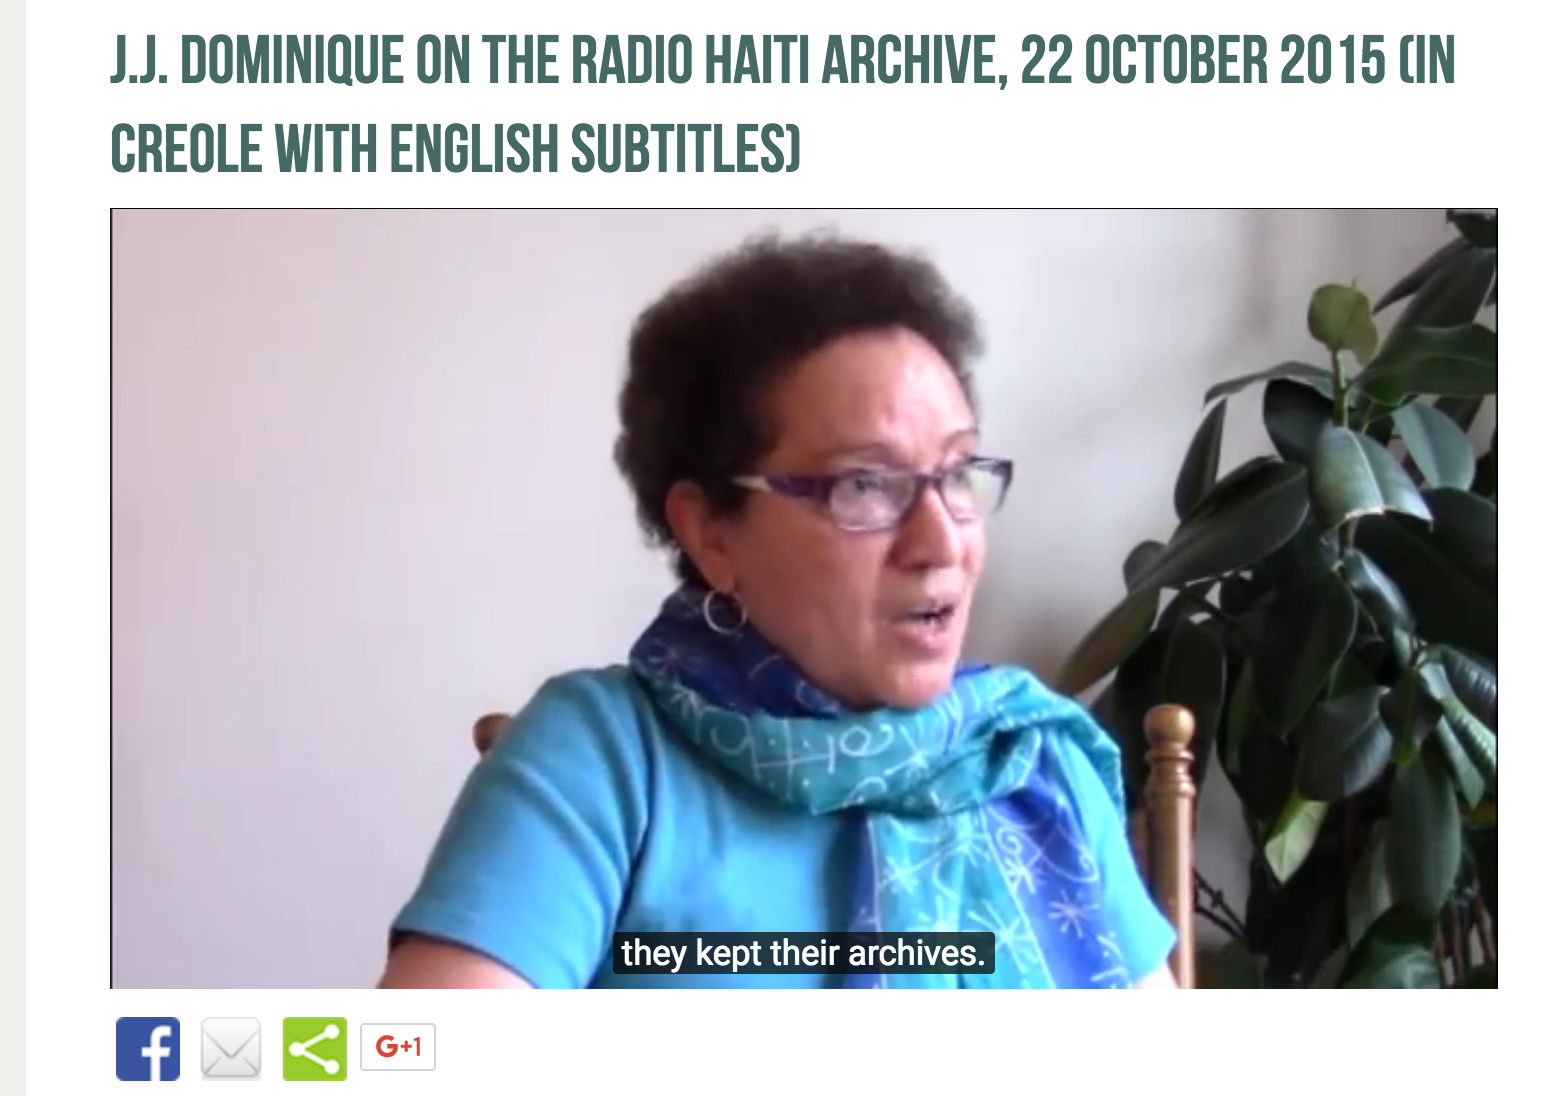 J.J. Dominique on the Radio Haiti archive